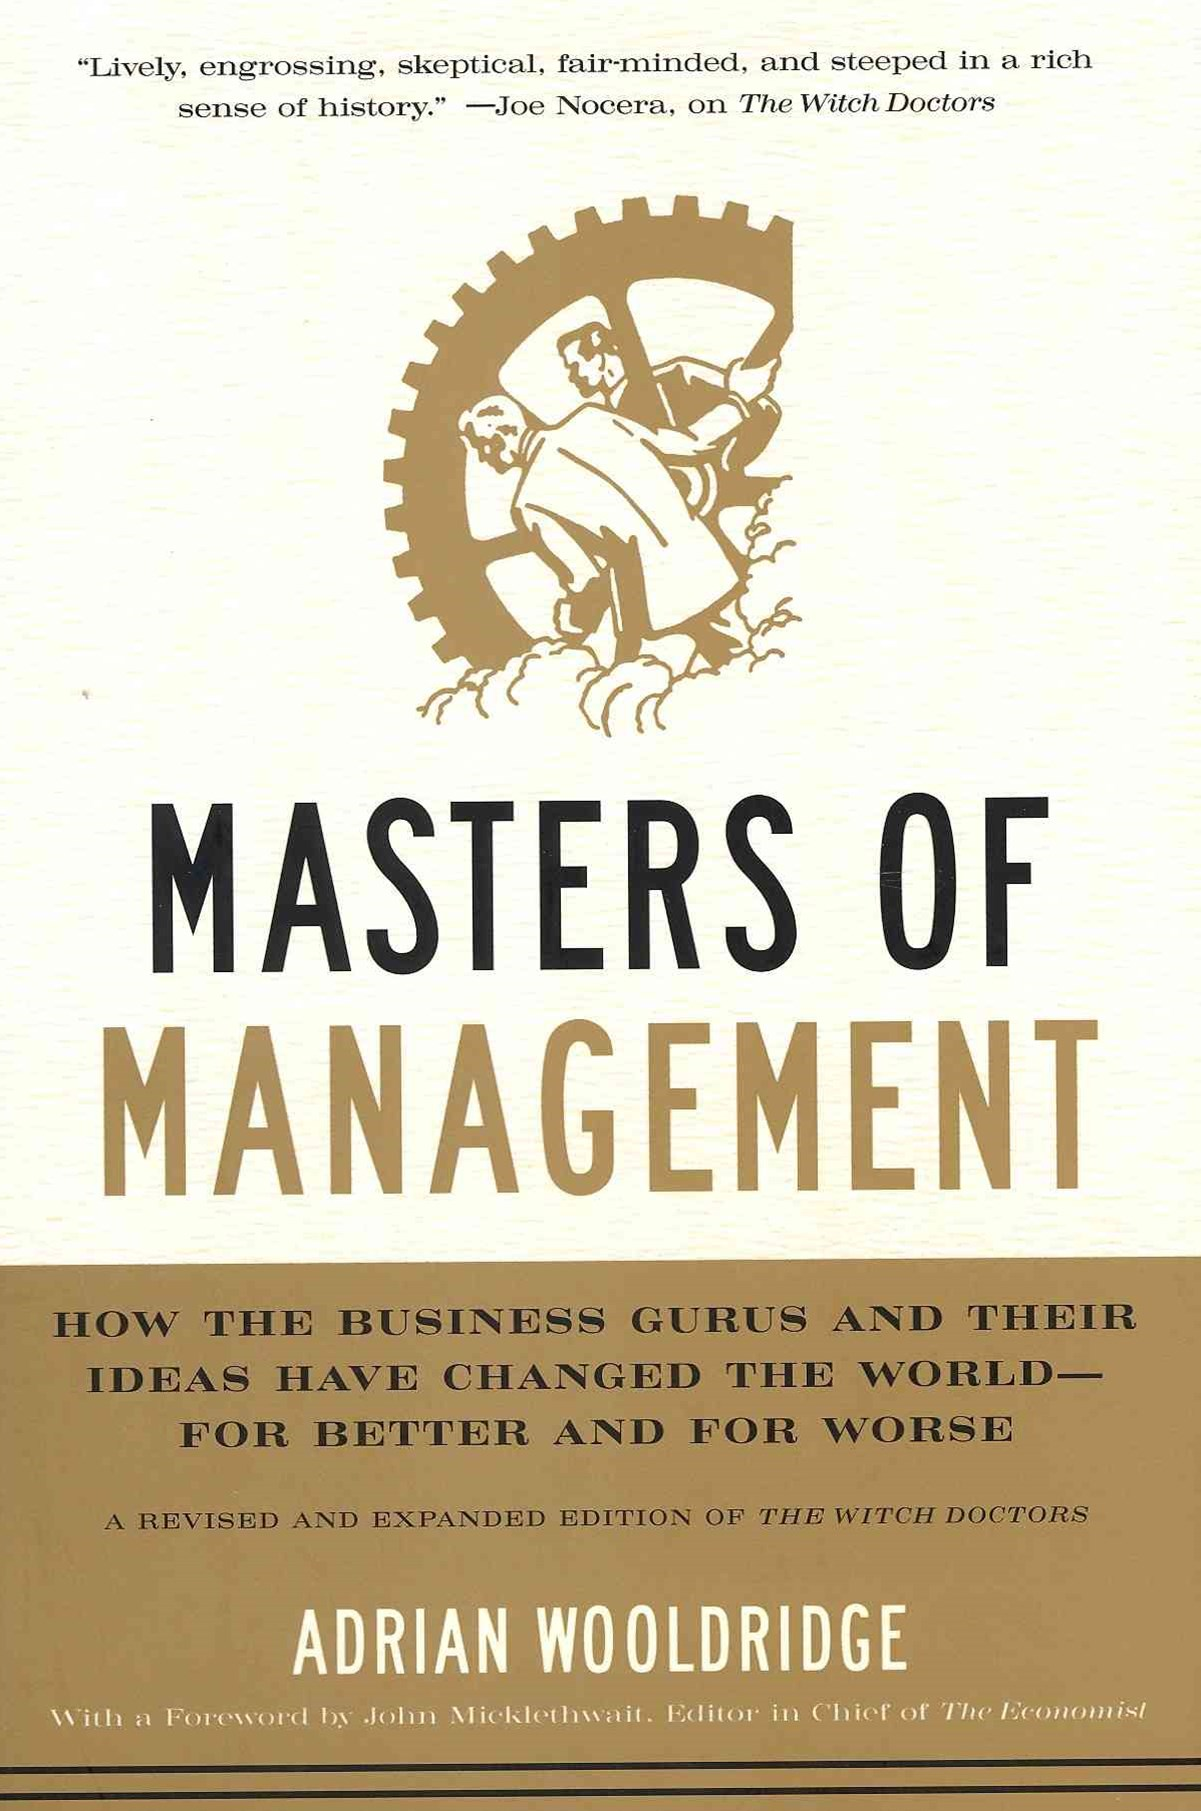 Masters of Management: How the Business Gurus and Their Ideas Have Changed the World - for Better a